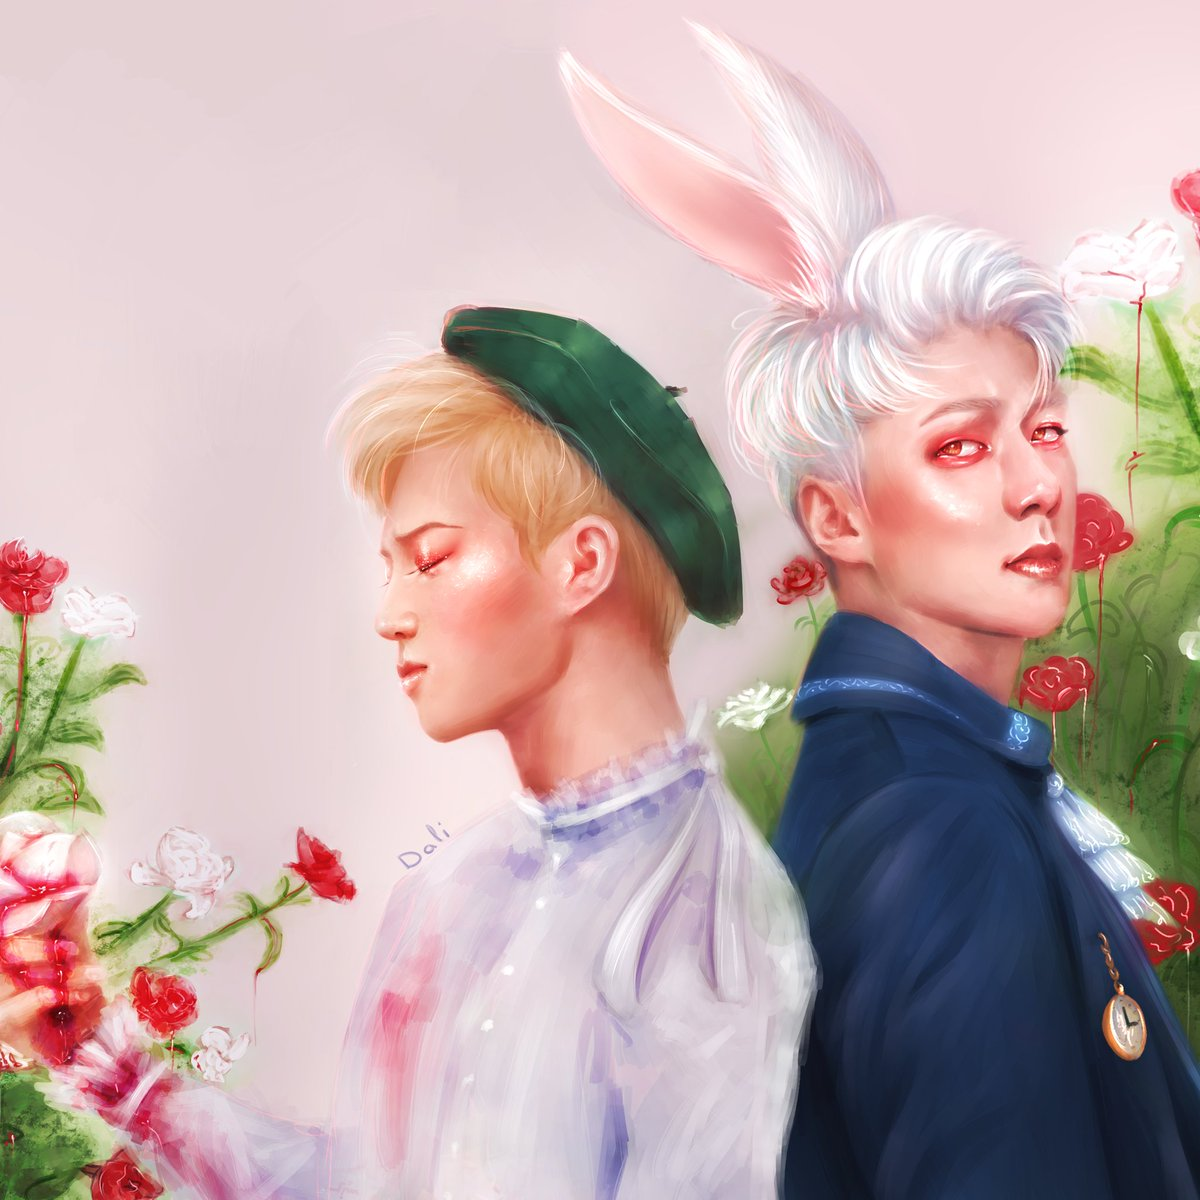 Painting roses red with blood. SeHo fanart. Junmyeon as Alice and Sehun as the White Rabbit. #EXO  #SEHUN #SUHO @weareoneEXO<br>http://pic.twitter.com/C72HDwTon3